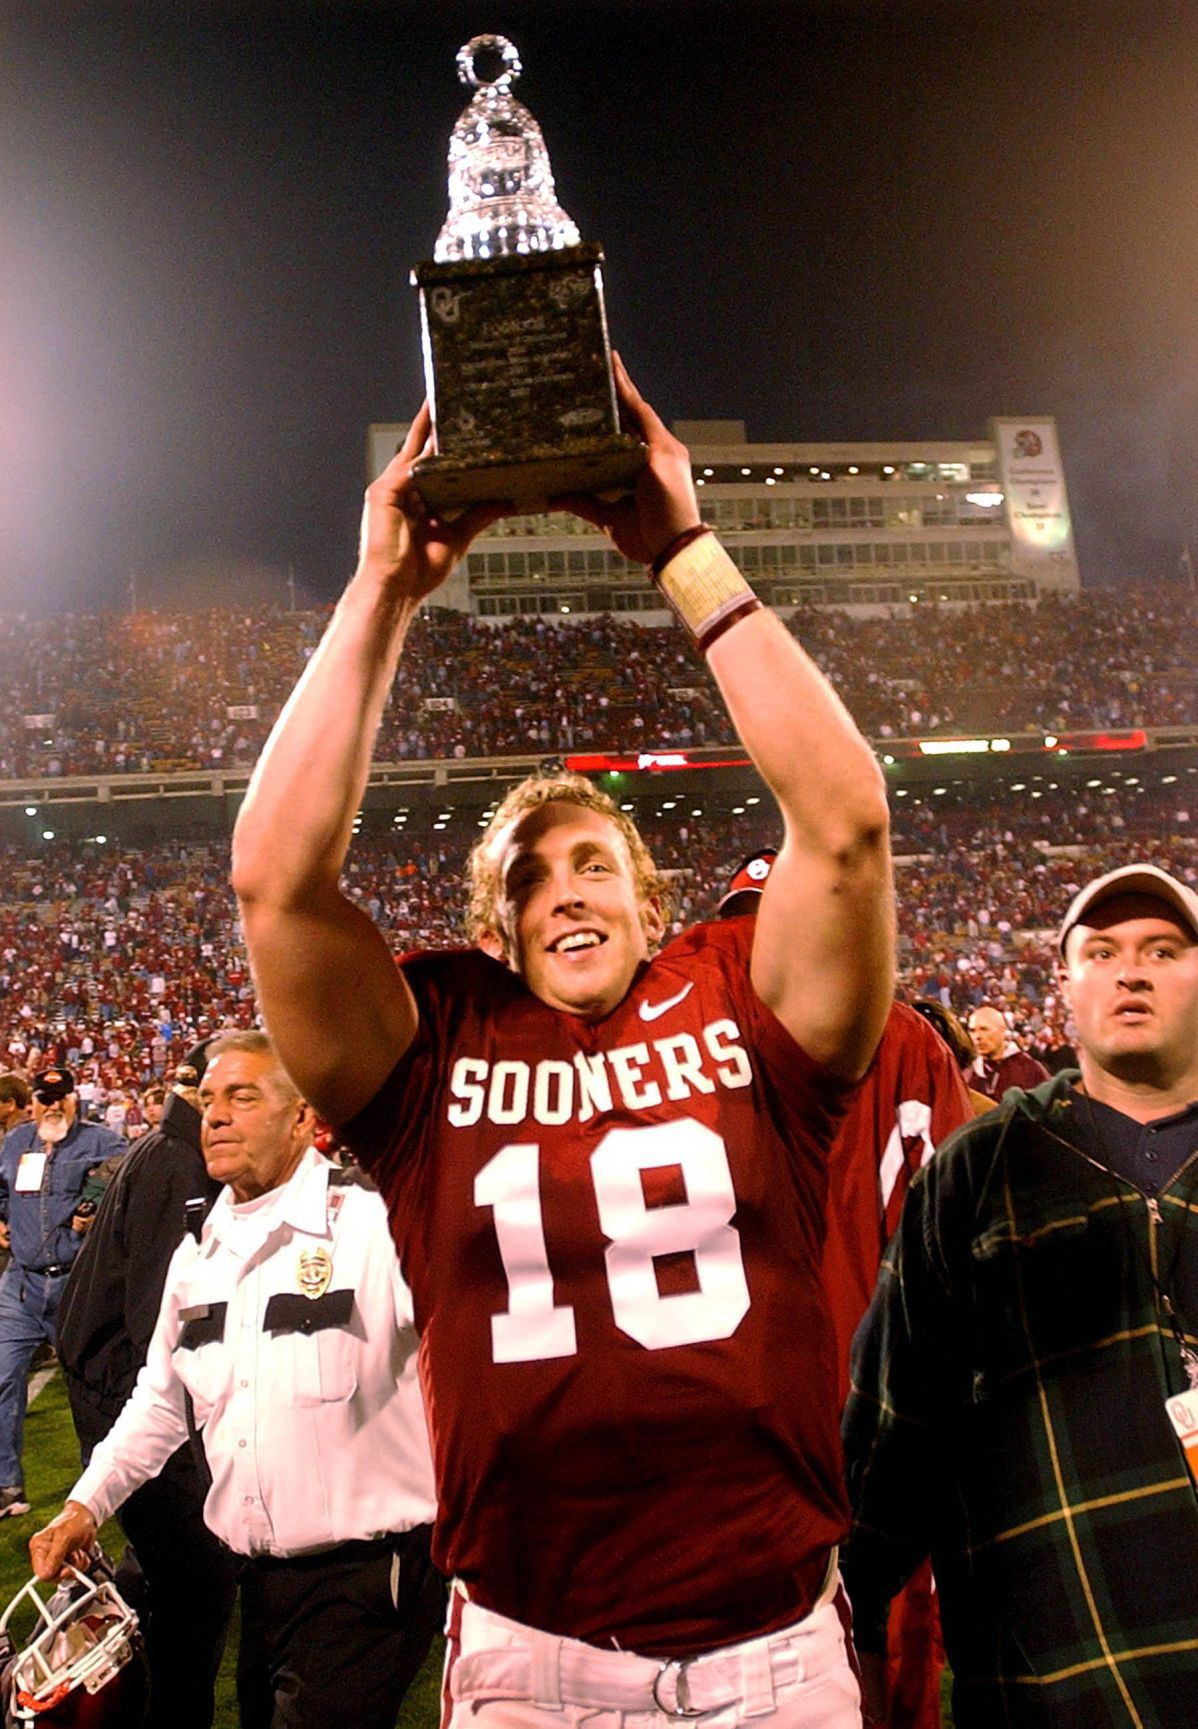 OU football: A look at the Sooners' Heisman Trophy winners